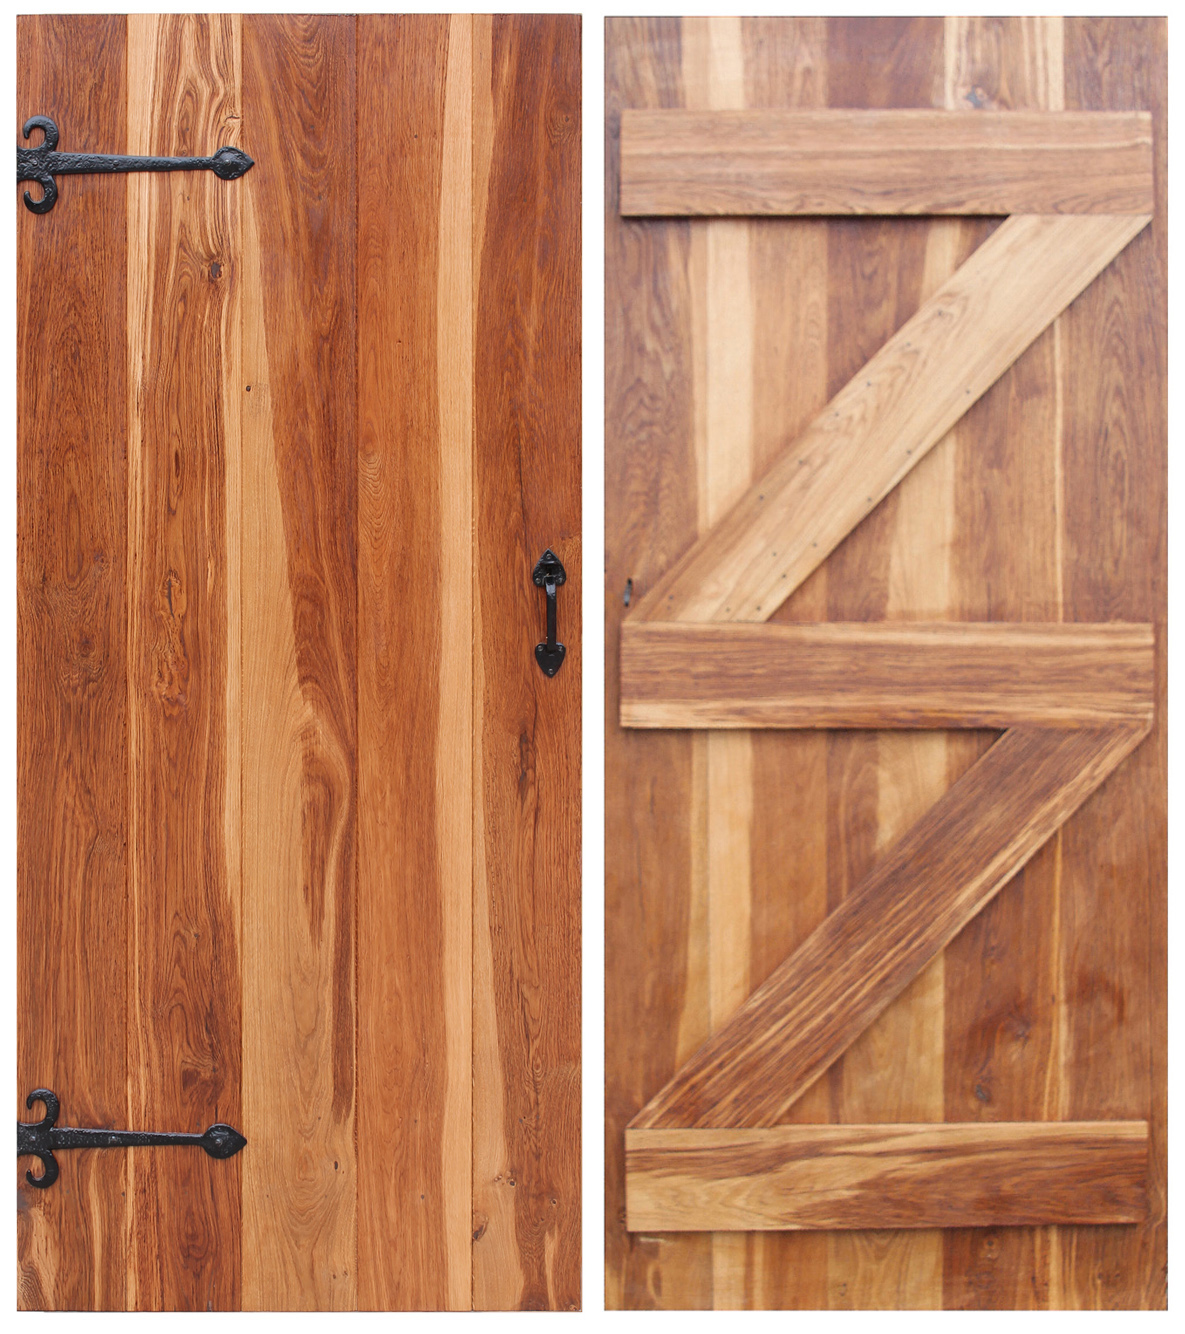 1334 #A0602B Brace And Ledger Farmhouse Doors Manufacturer Morley Equestrian image Farmhouse Front Doors 40331185